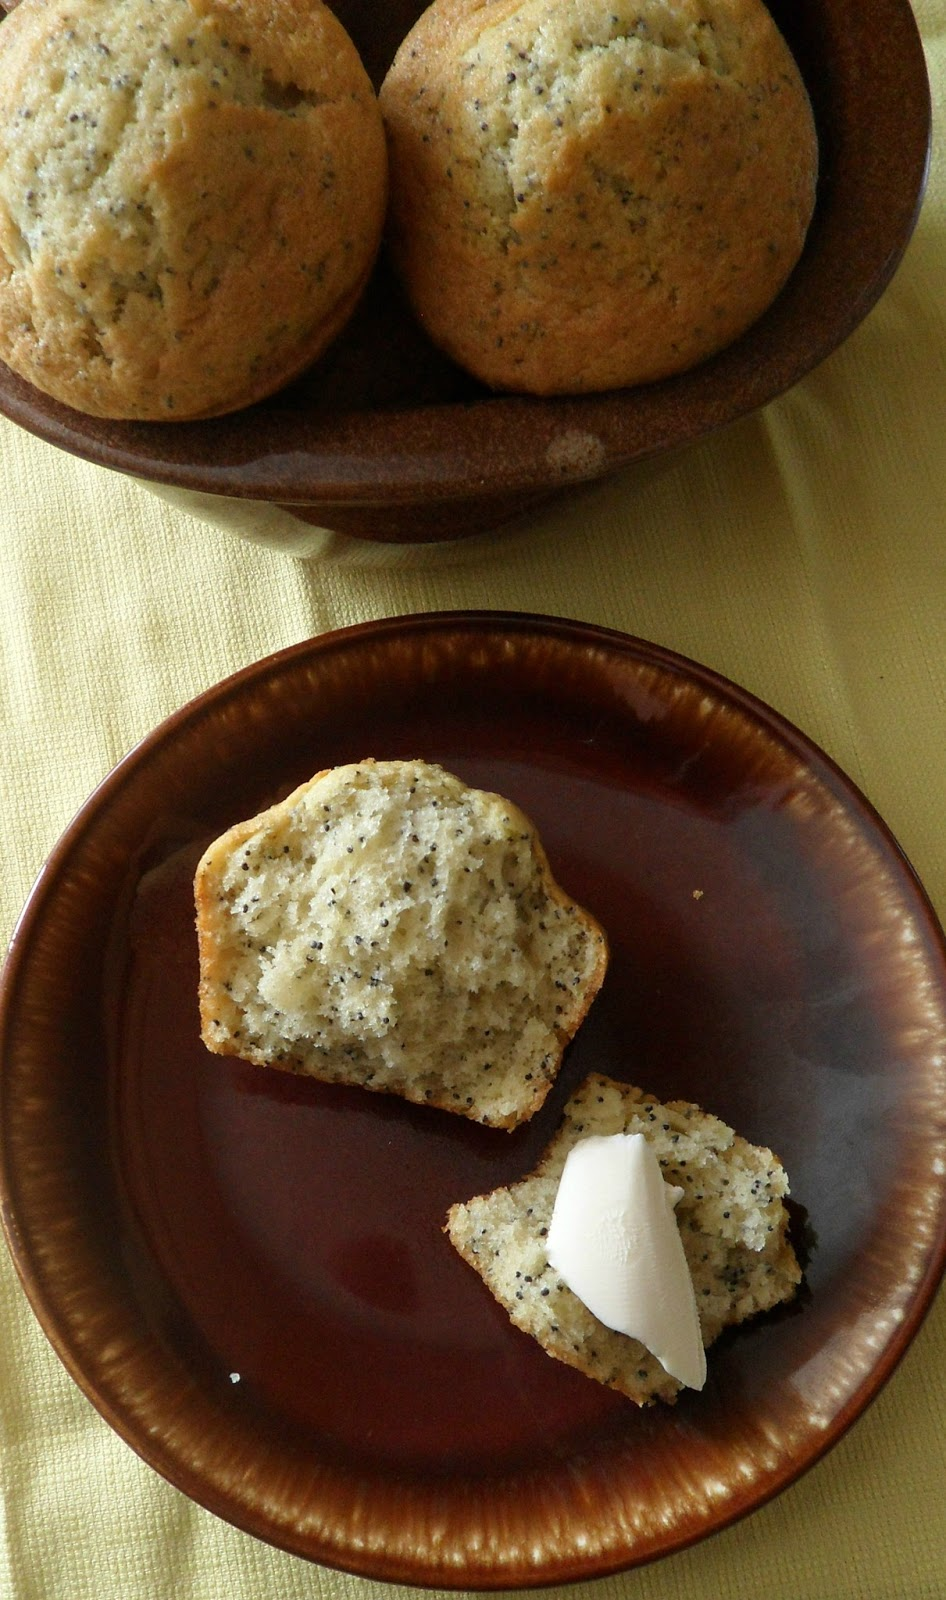 ... muffin to make (and devour) than these Lemon Poppy Seed Muffins